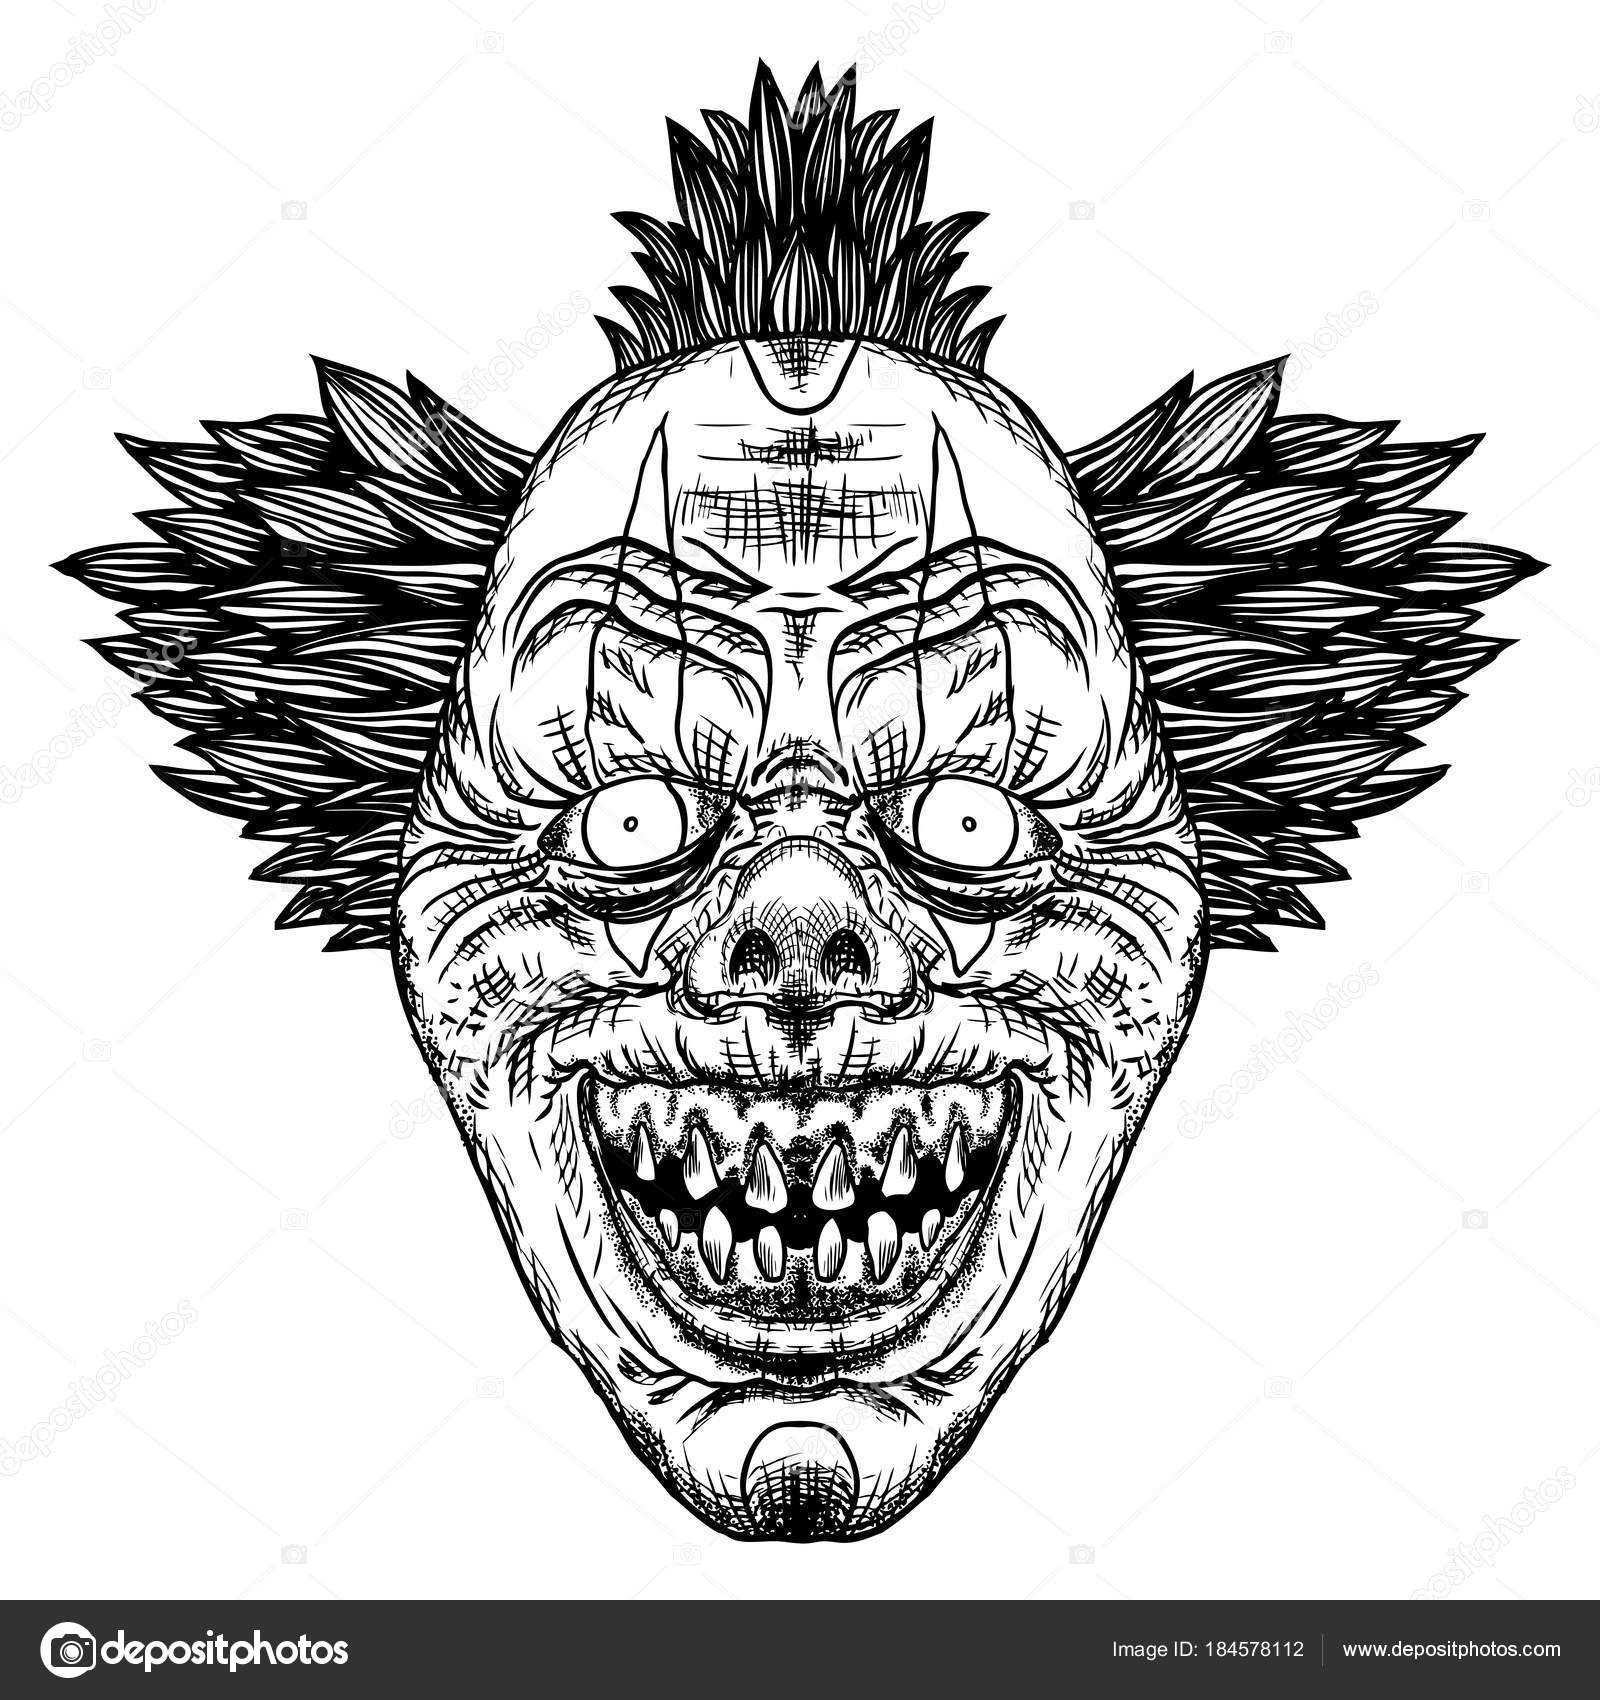 Scary Cartoon Clown Illustration Blackwork Adult Flesh Tattoo Concept  Horror — Stock Vector © goldenshrimp #184578112